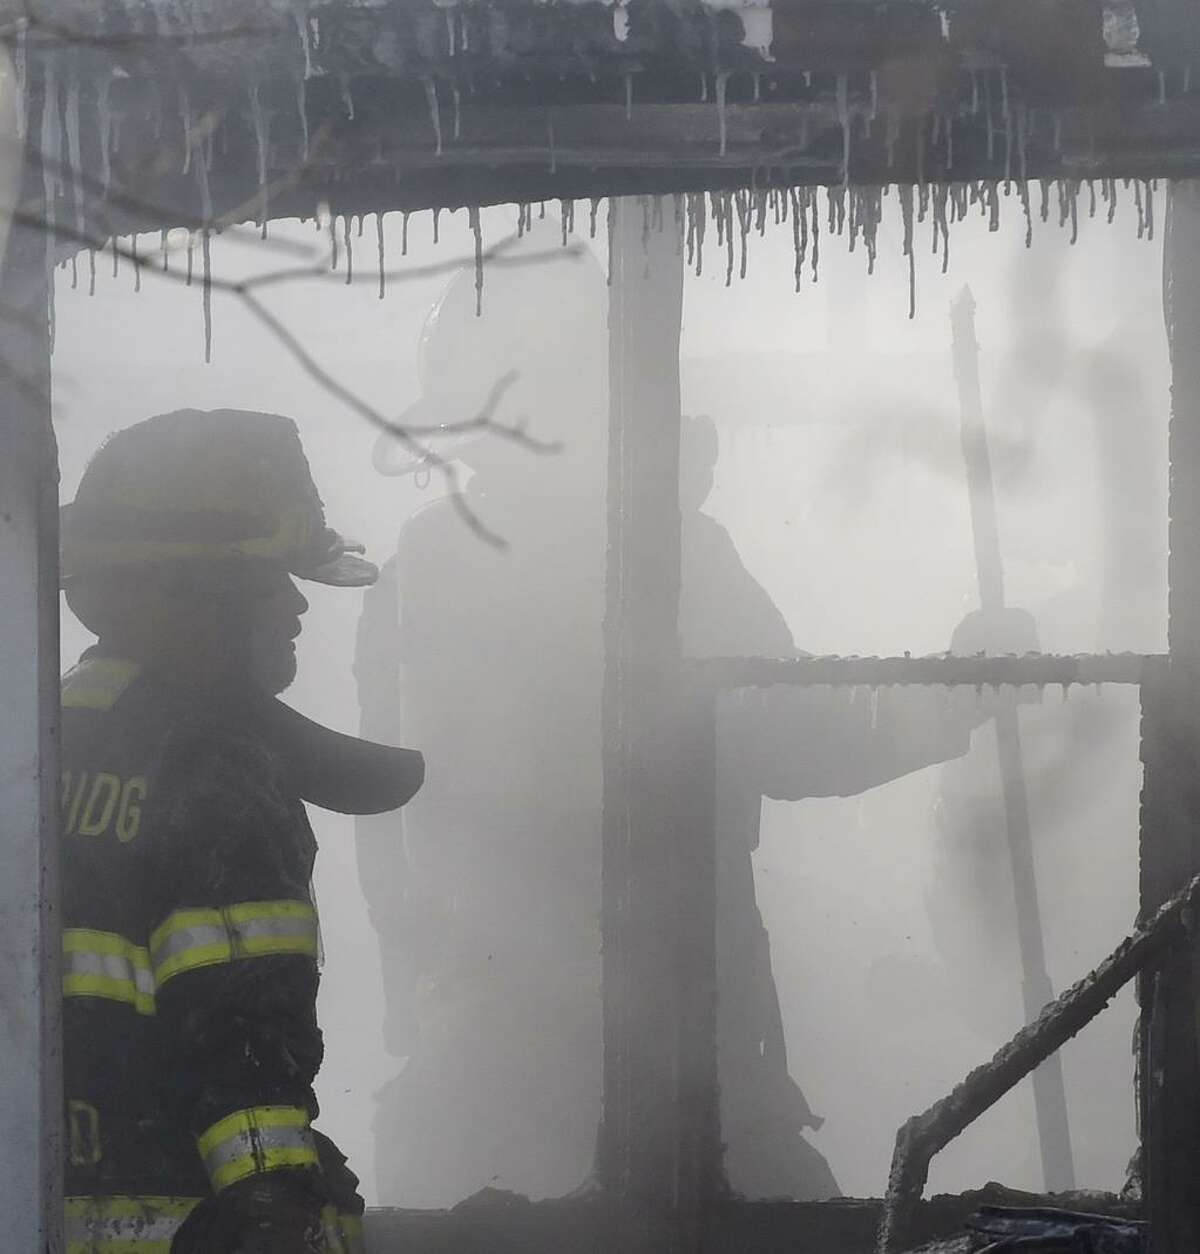 Firefighters battled a house fire at 12 North Ridge in Malta Monday morning. The fire caused extensive damage to the home. (Skip Dickstein / Times Union)